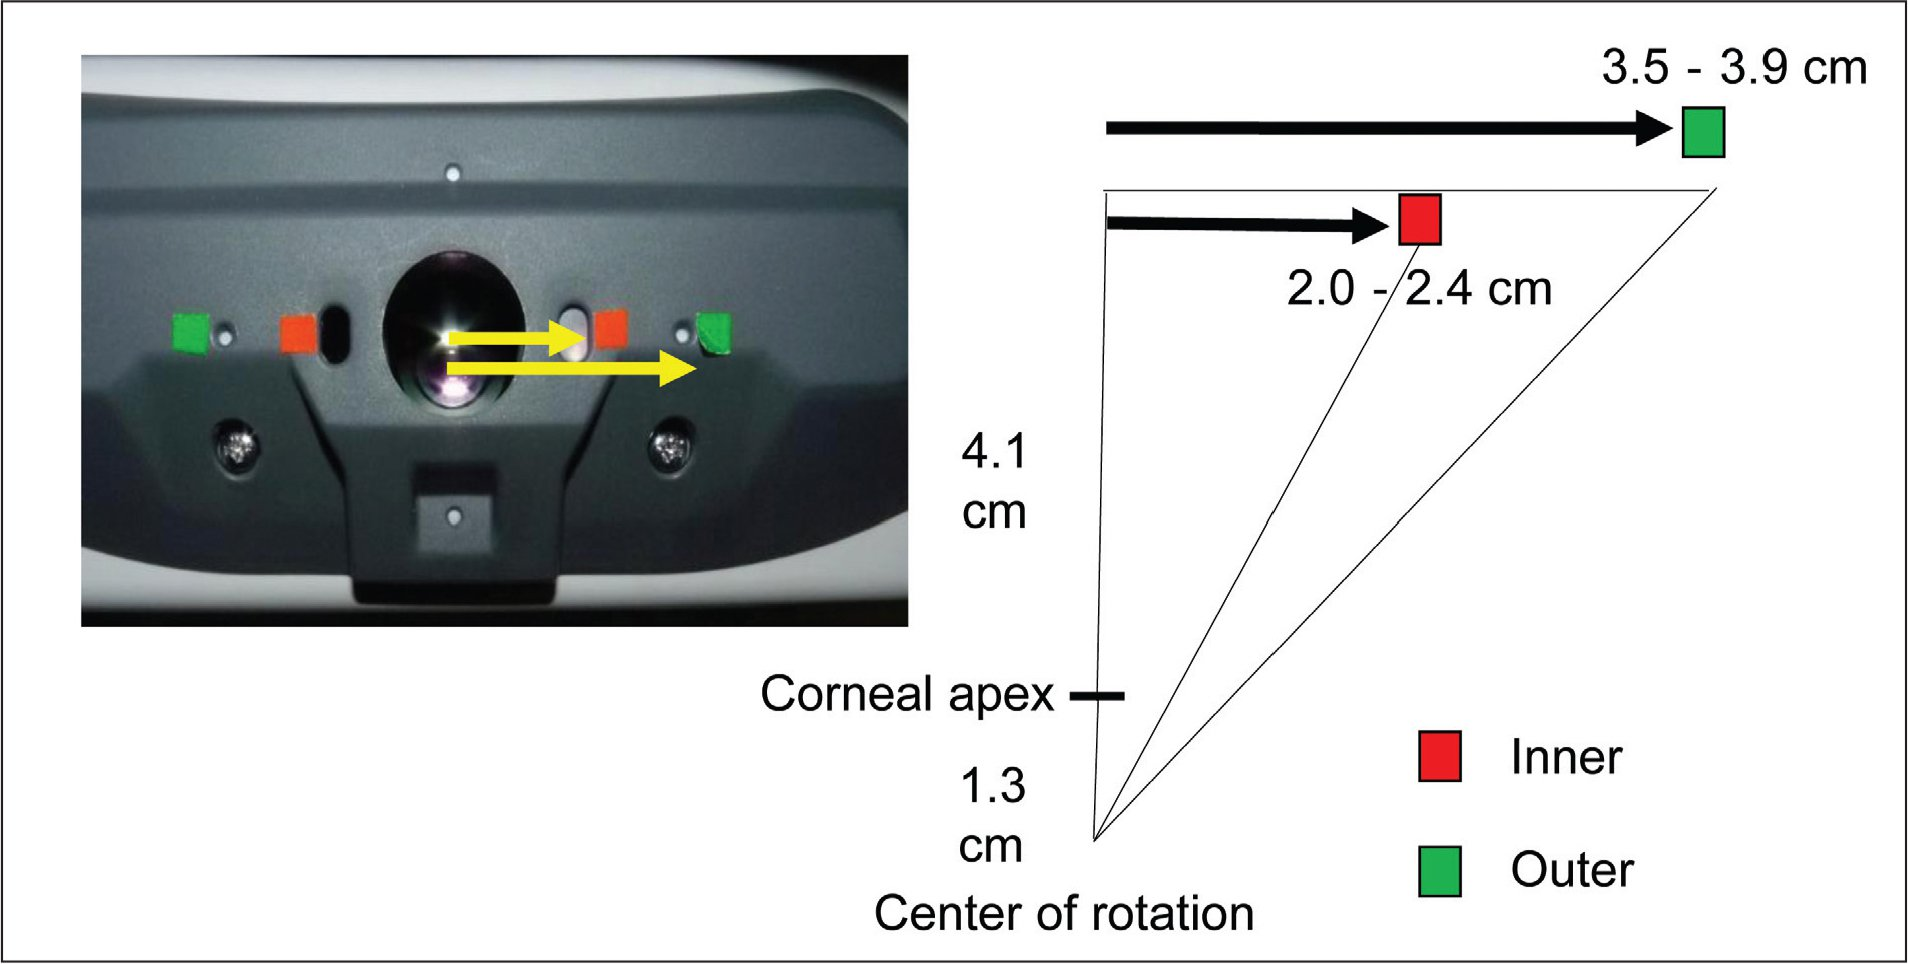 Fixation targets for the measurement of the angle and extraocular muscle insertion site distance using anterior segment optical coherence tomography (AS-OCT); 4-mm square stickers for two gaze fixation targets were placed. A red sticker was placed 2 to 2.4 cm from the objective lens for the inner gaze fixation target and a green sticker was placed 3.5 to 3.9 cm from the objective lens for the outer gaze fixation target on the AS-OCT instrument. The target gaze locations required 20.3 to 23.7 and 33 to 35.8 degrees of ocular rotation with a 5.4-cm distance between the ocular surface and the measurement window.